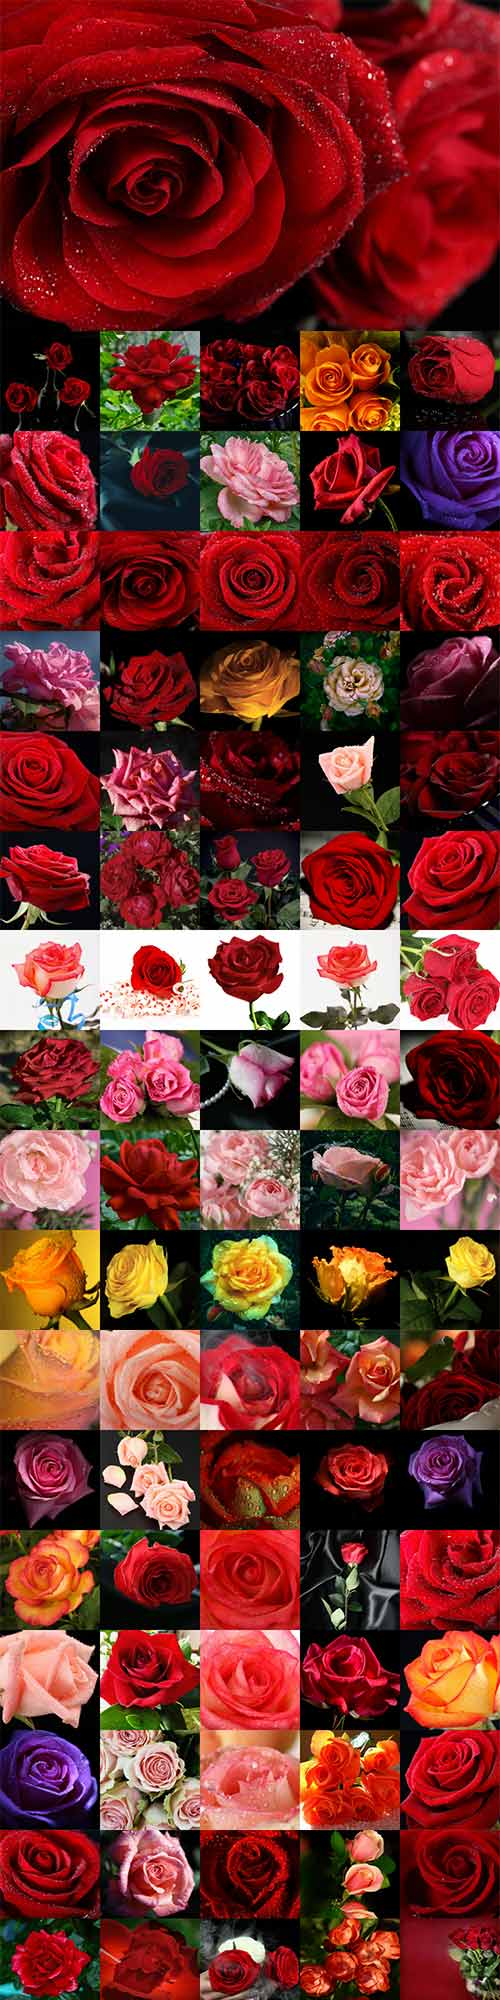 280 beautiful roses